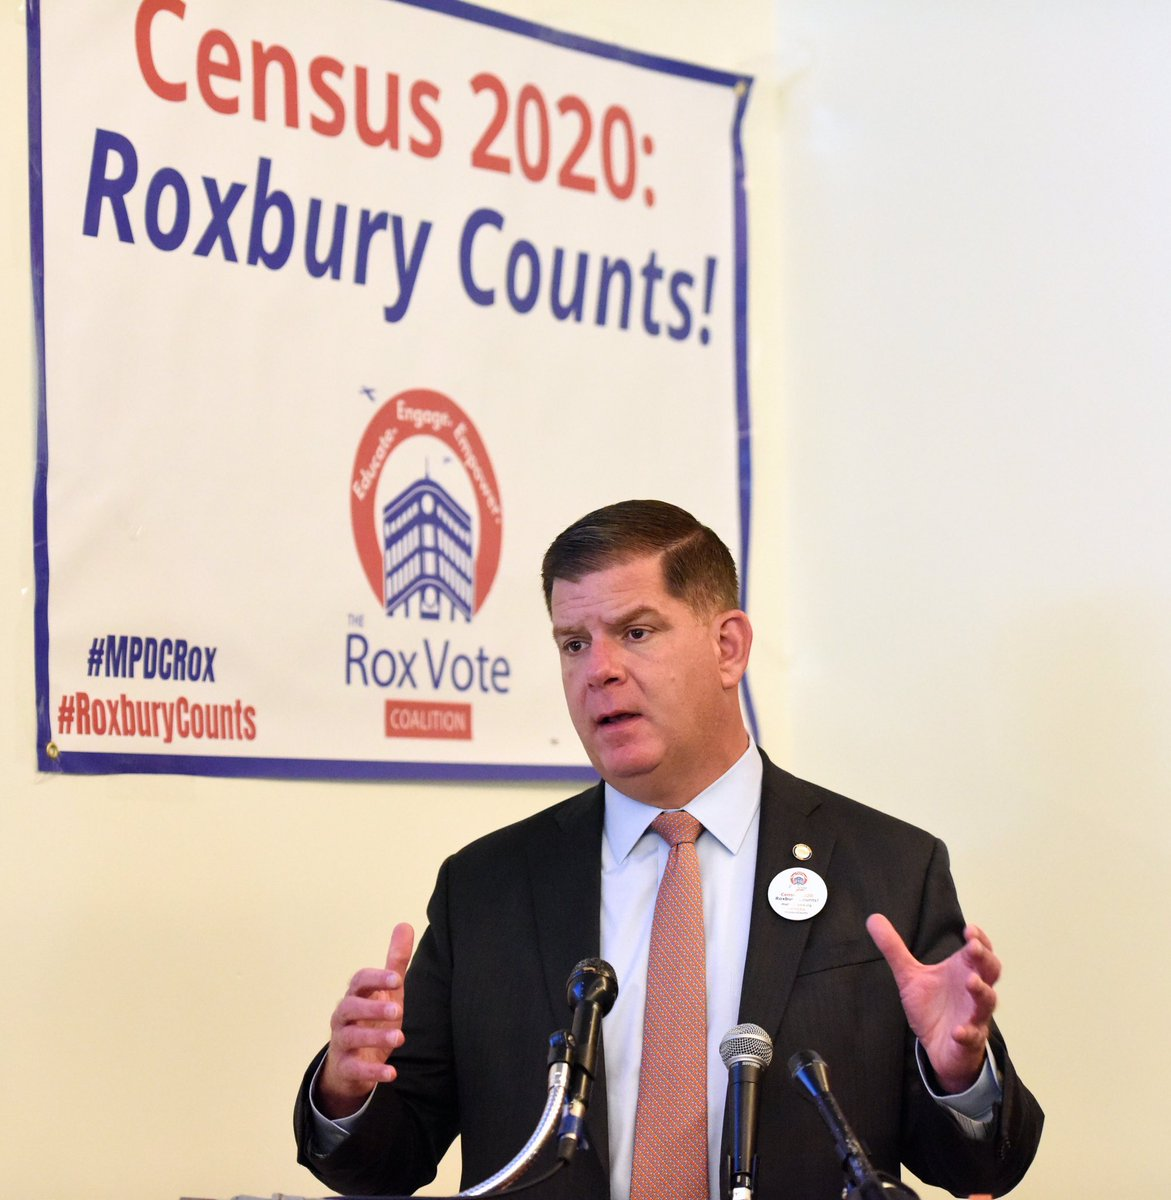 We are working hard to ensure all Bostonians are counted in the 2020 Census, because all Bostonians count. Together with community organizations, well continue to organize and mobilize Bostonians to ensure an equitable and accurate count. ow.ly/r6TA50uEfWU